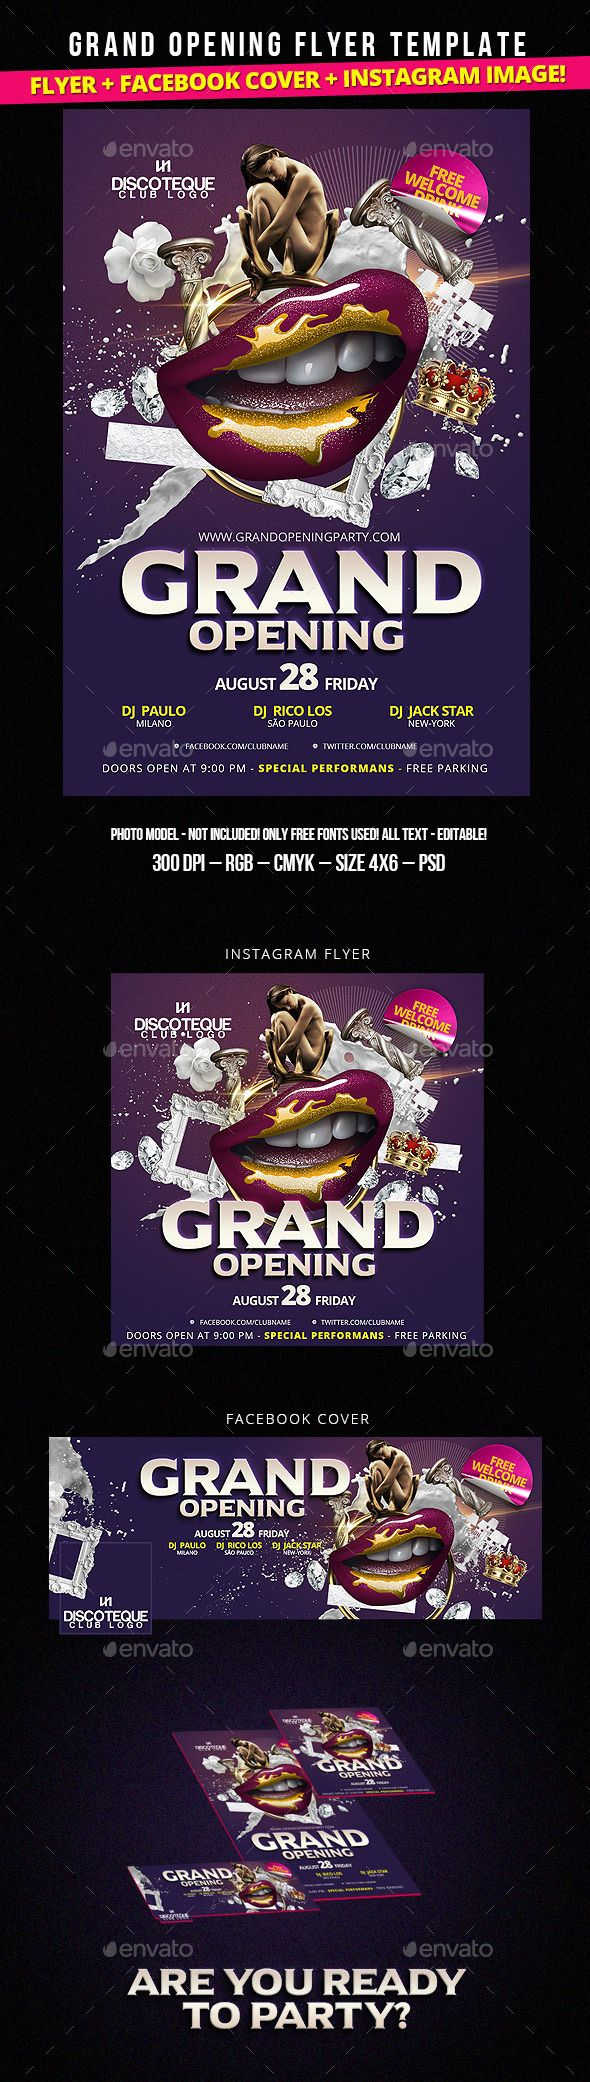 25 best ideas about grand opening party on pinterest launch party grand opening and red for Grand opening flyer ideas